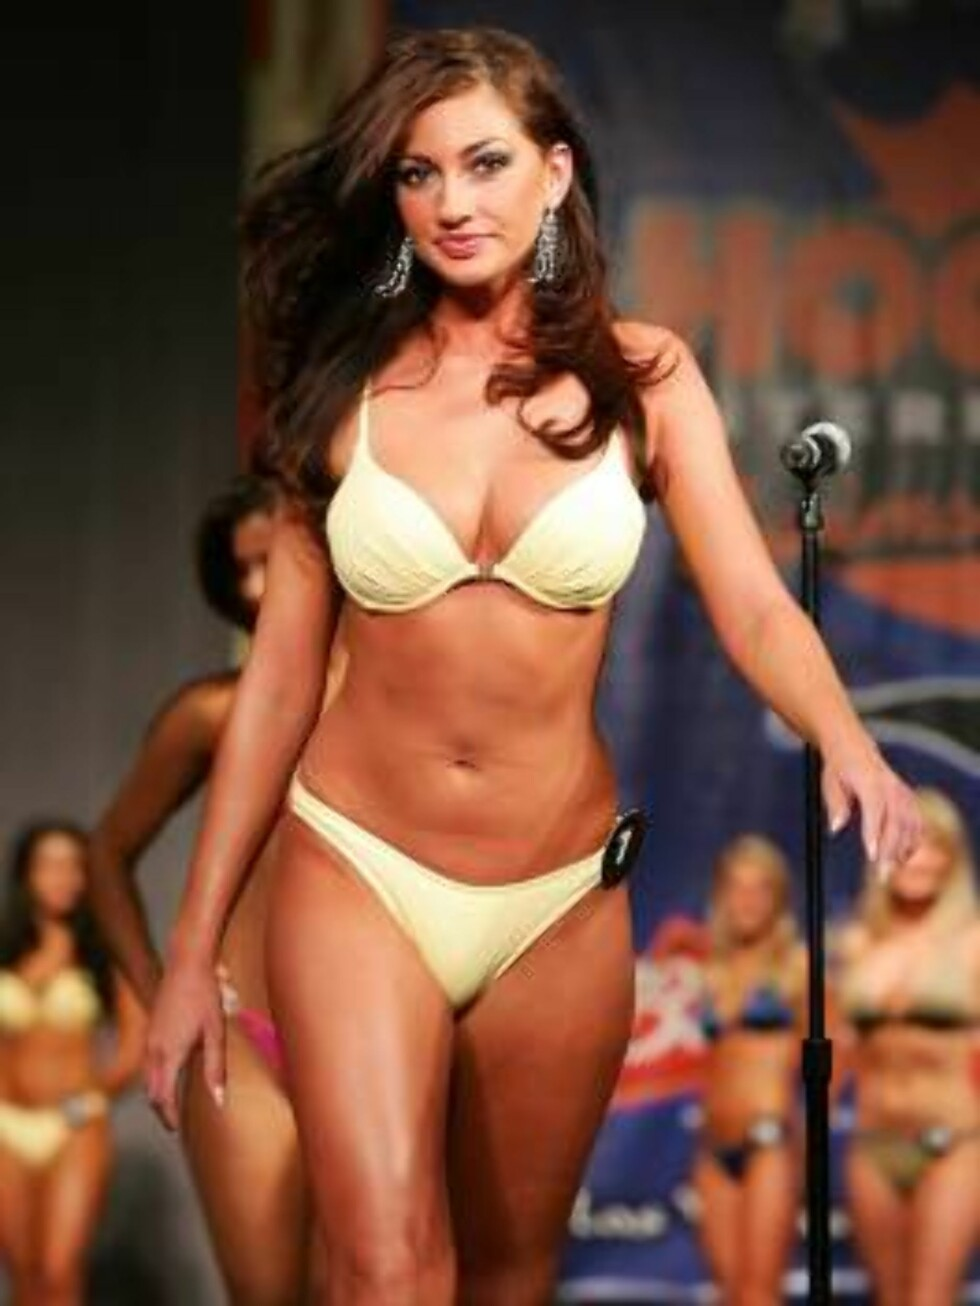 LAS VEGAS - JULY 24:  Alison Clay of Ohio competes in a preliminary preview of the 10th annual Hooters International Swimsuit Pageant at the Aladdin Casino & Resort June 24, 2006 in Las Vegas, Nevada. Over 120 Hooters girls who work in one of the company' Foto: All Over Press